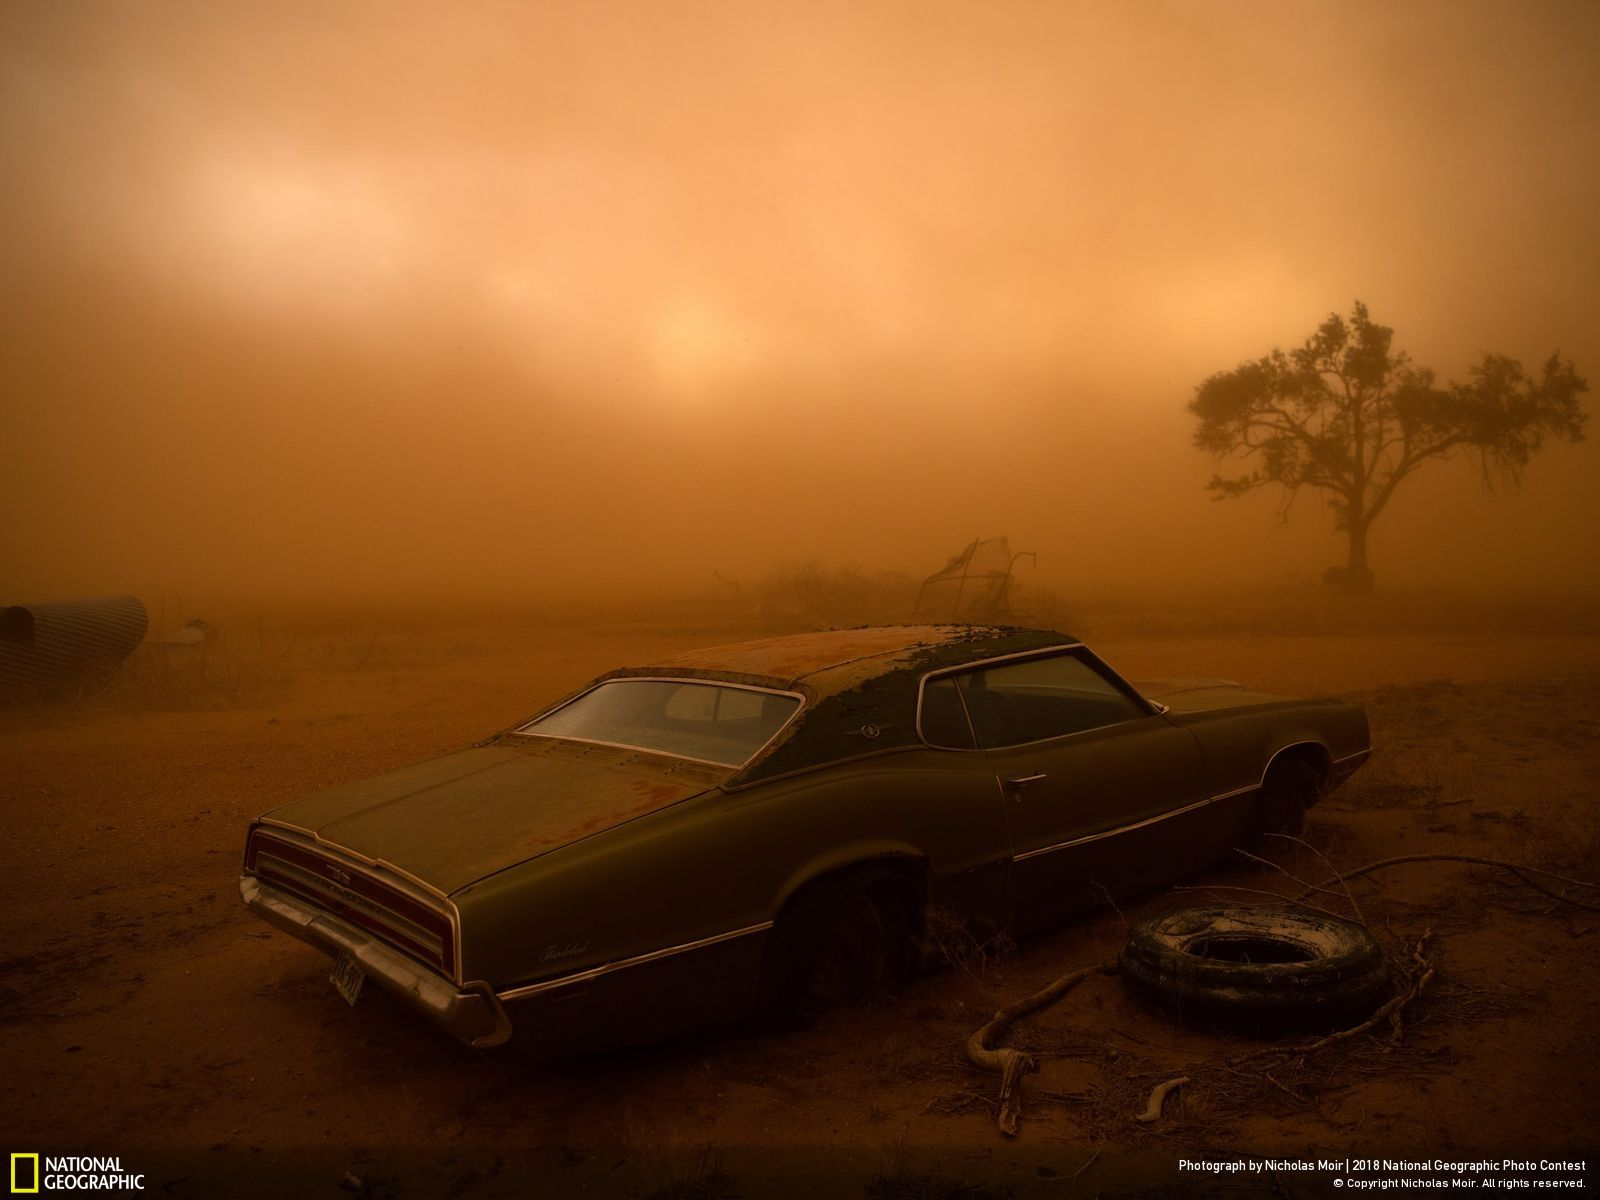 Second Prix Places National Geographic Photo Contest, Thunderbird in the Dust par Nicholas Moir